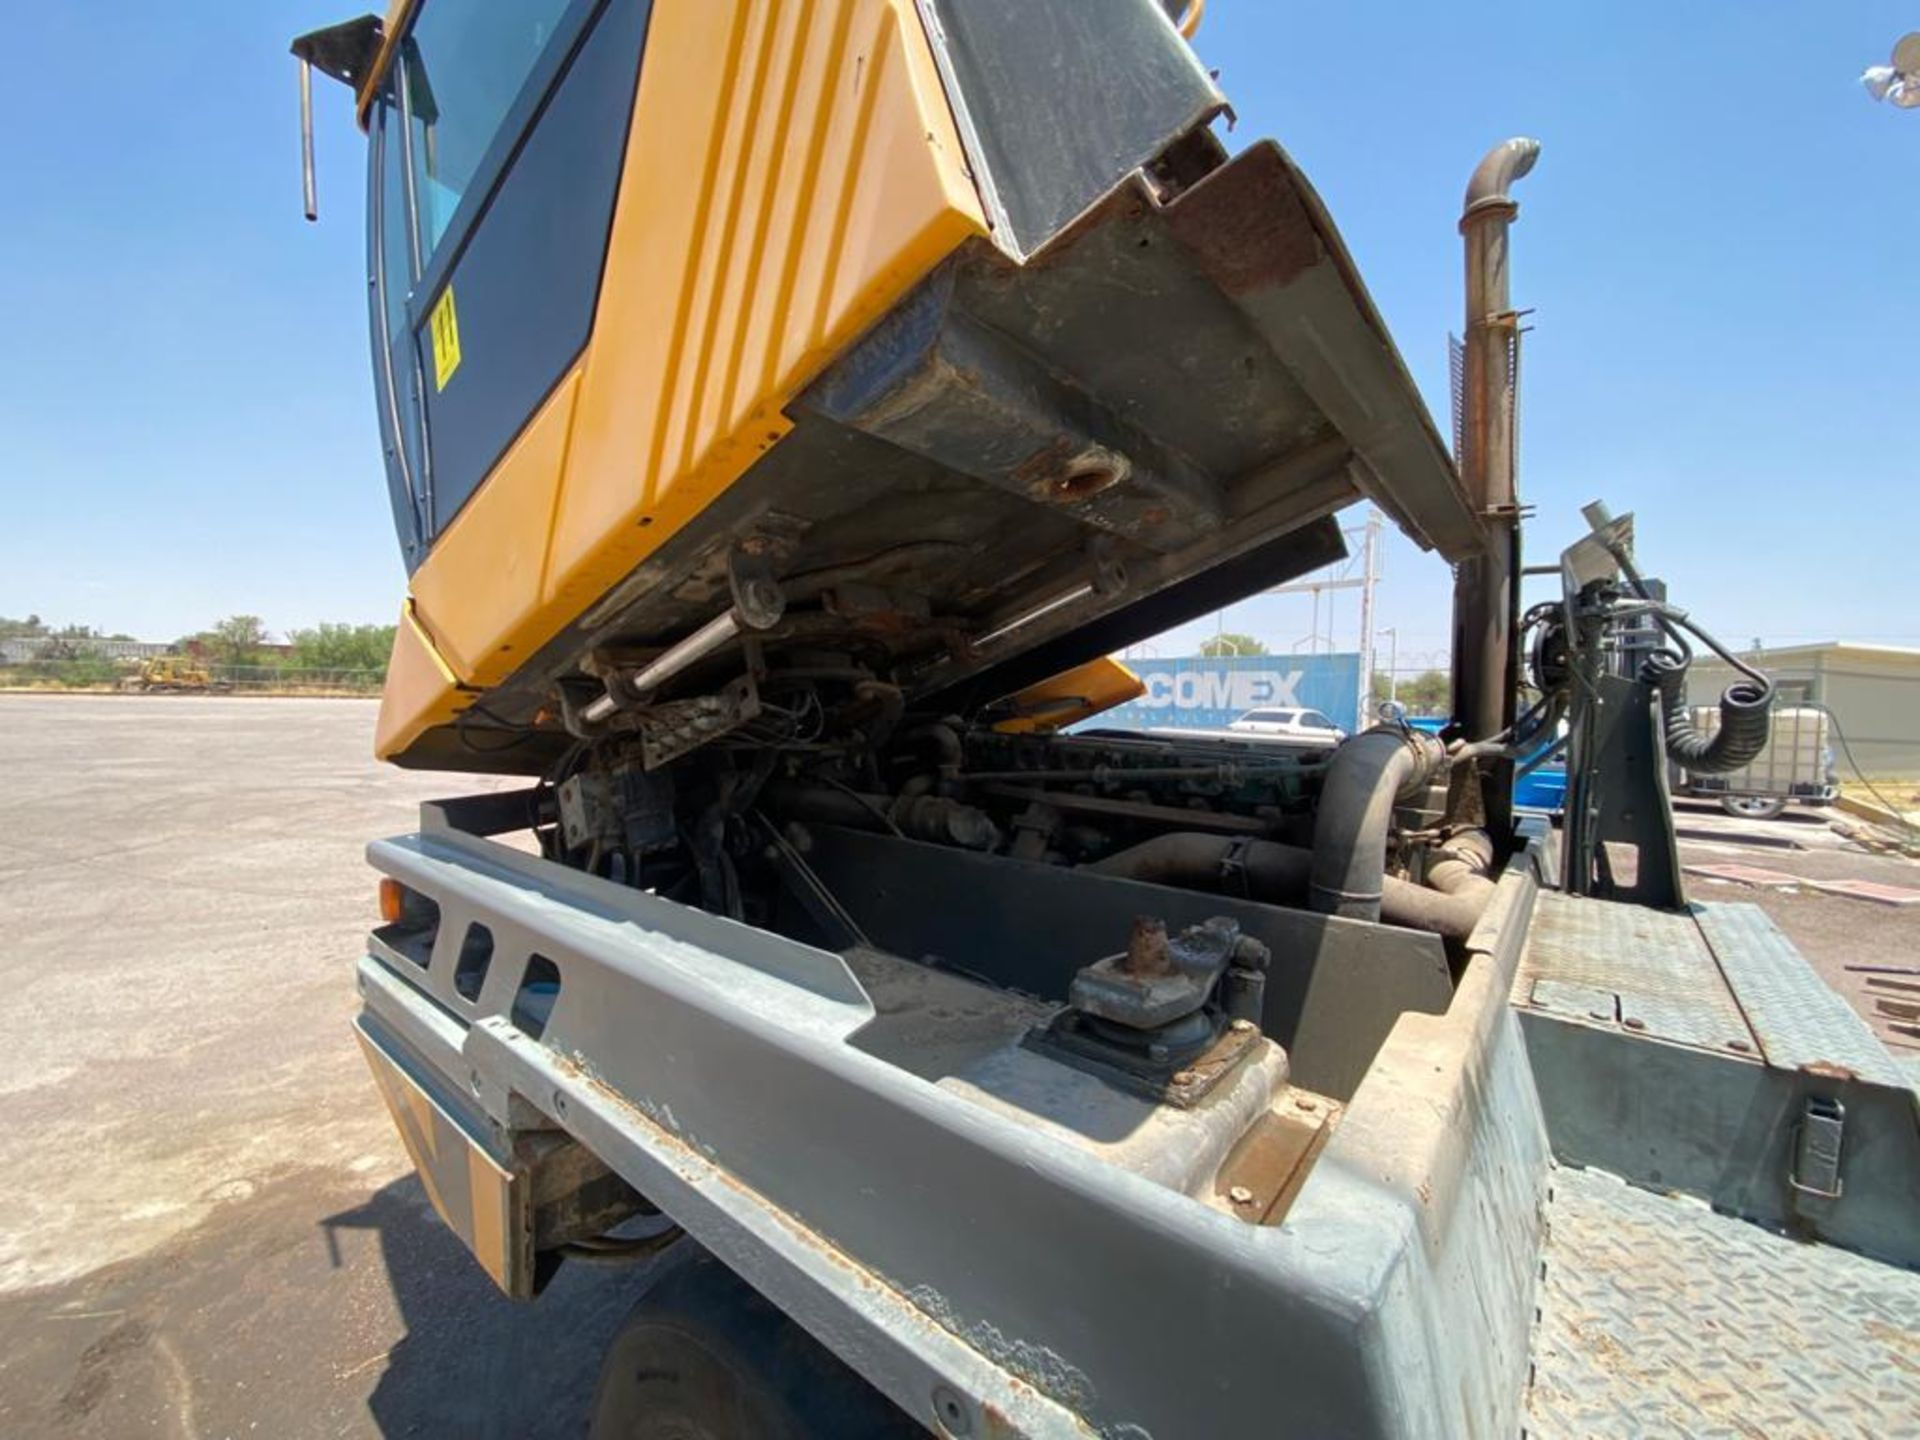 Terberg Capacity 2002 Terminal Tractor, automatic transmission - Image 35 of 57